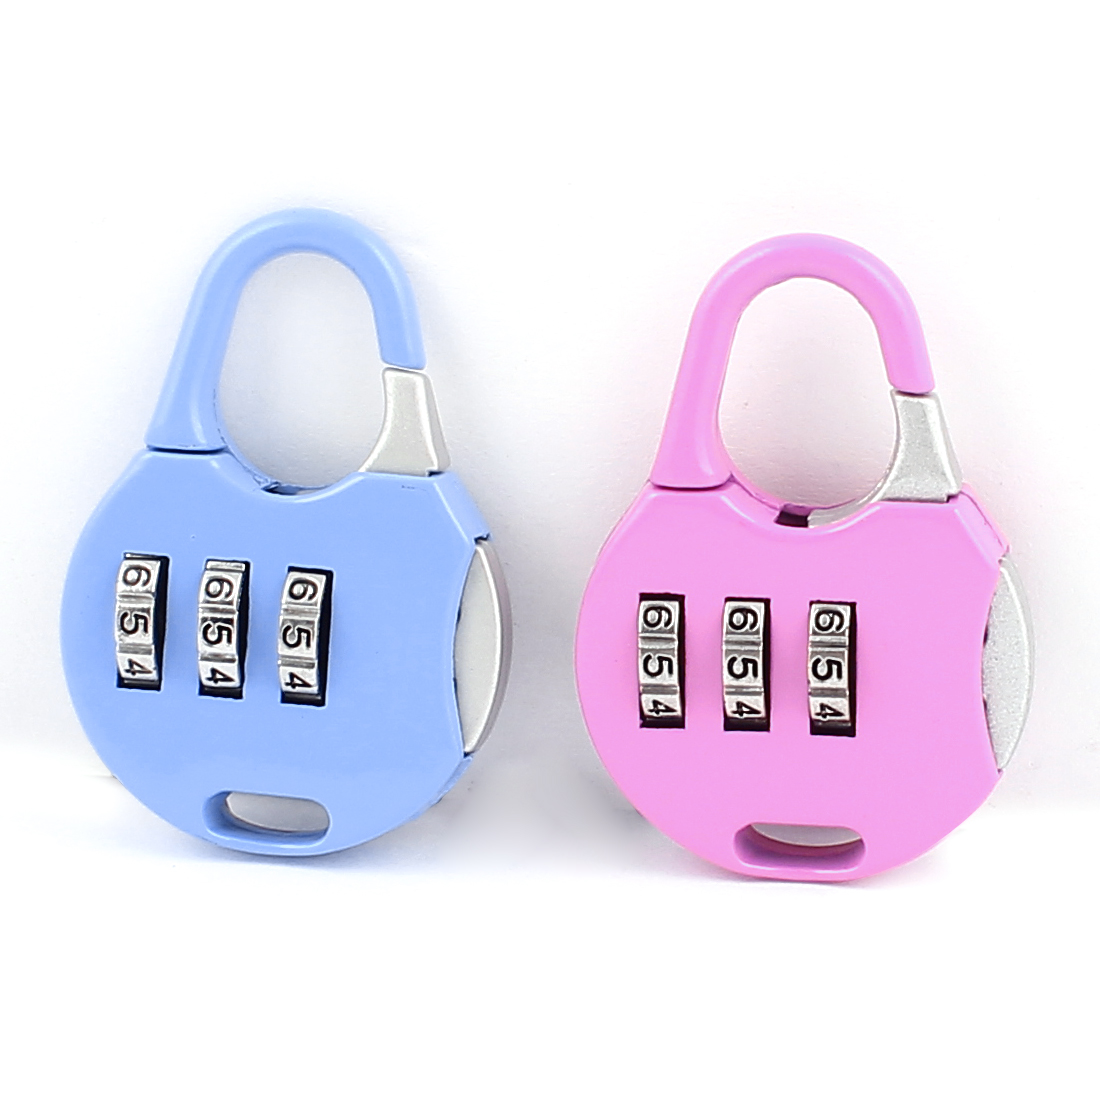 Handbag Shape 0-9 Number Combination Lock Padlock Blue Fuchsia 2Pcs